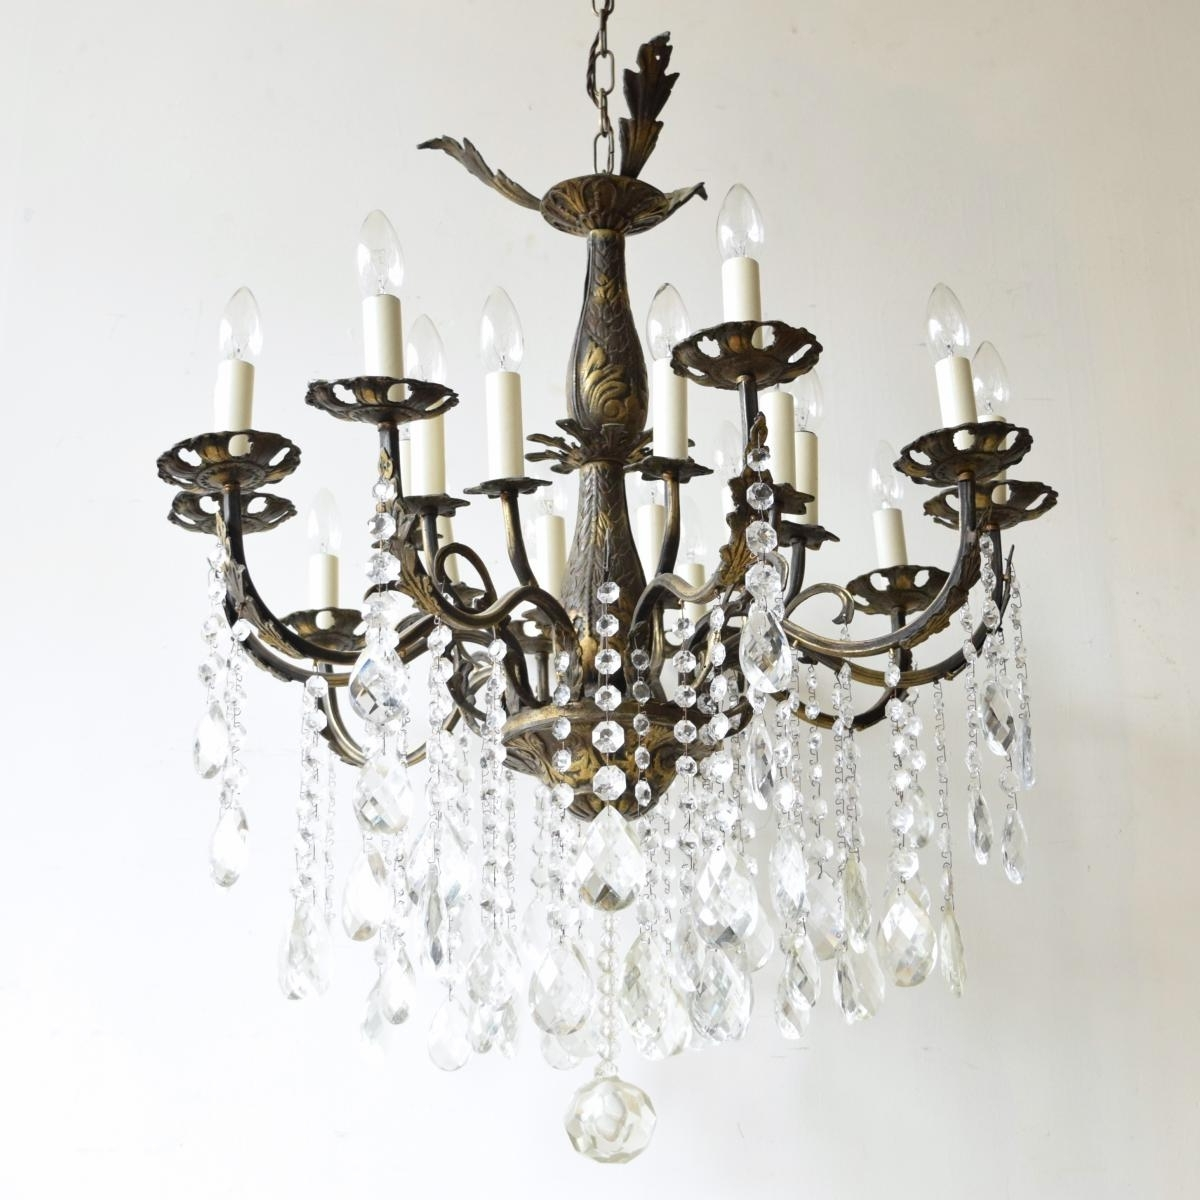 Newest Vintage French Chandeliers With Regard To Large Vintage French 16 Light Brass Chandelier For Sale At Pamono (View 10 of 15)